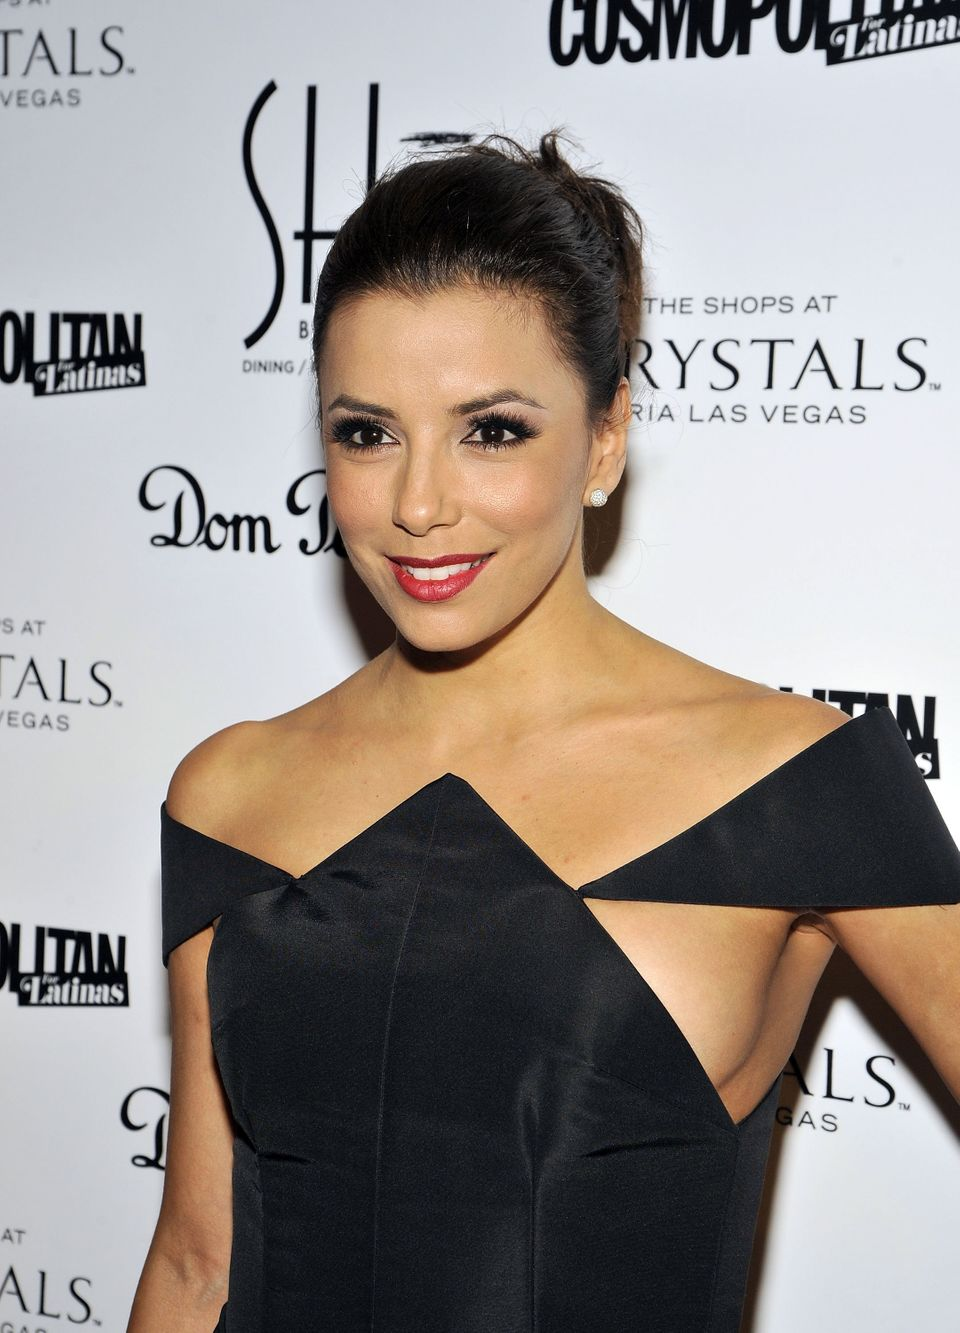 Longoria attended a restaurant opening in Las Vegas, where she put sideboob on the menu.